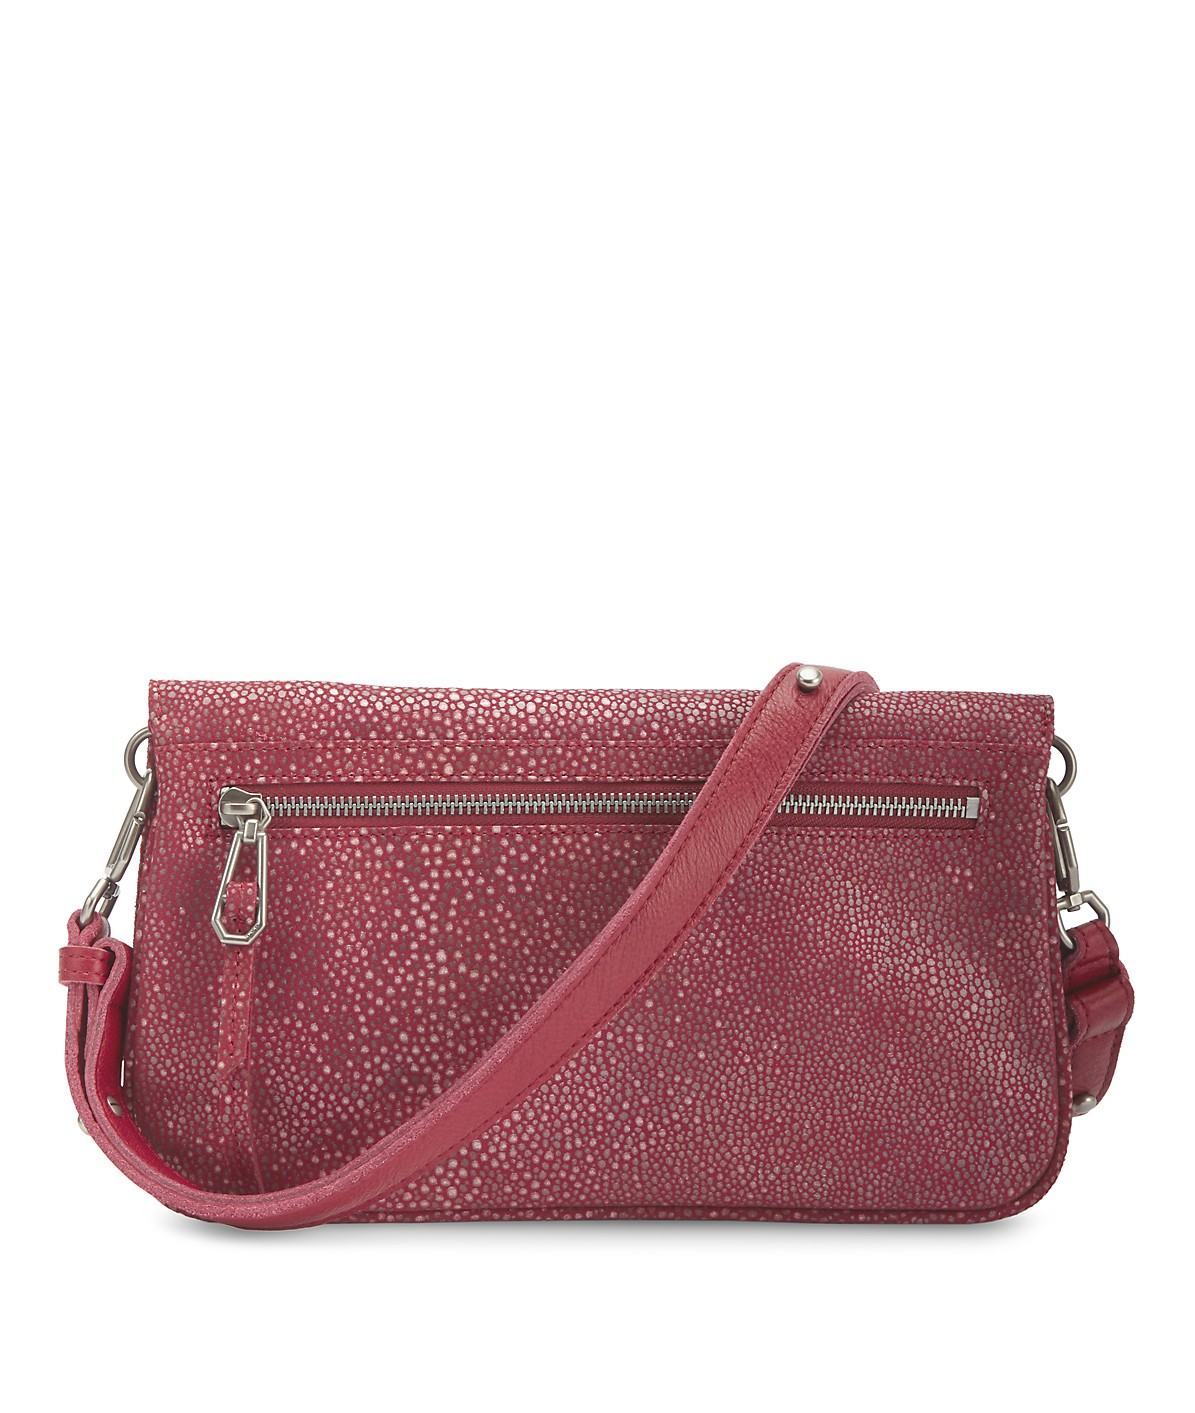 Cross-body bag AloeF7 from liebeskind